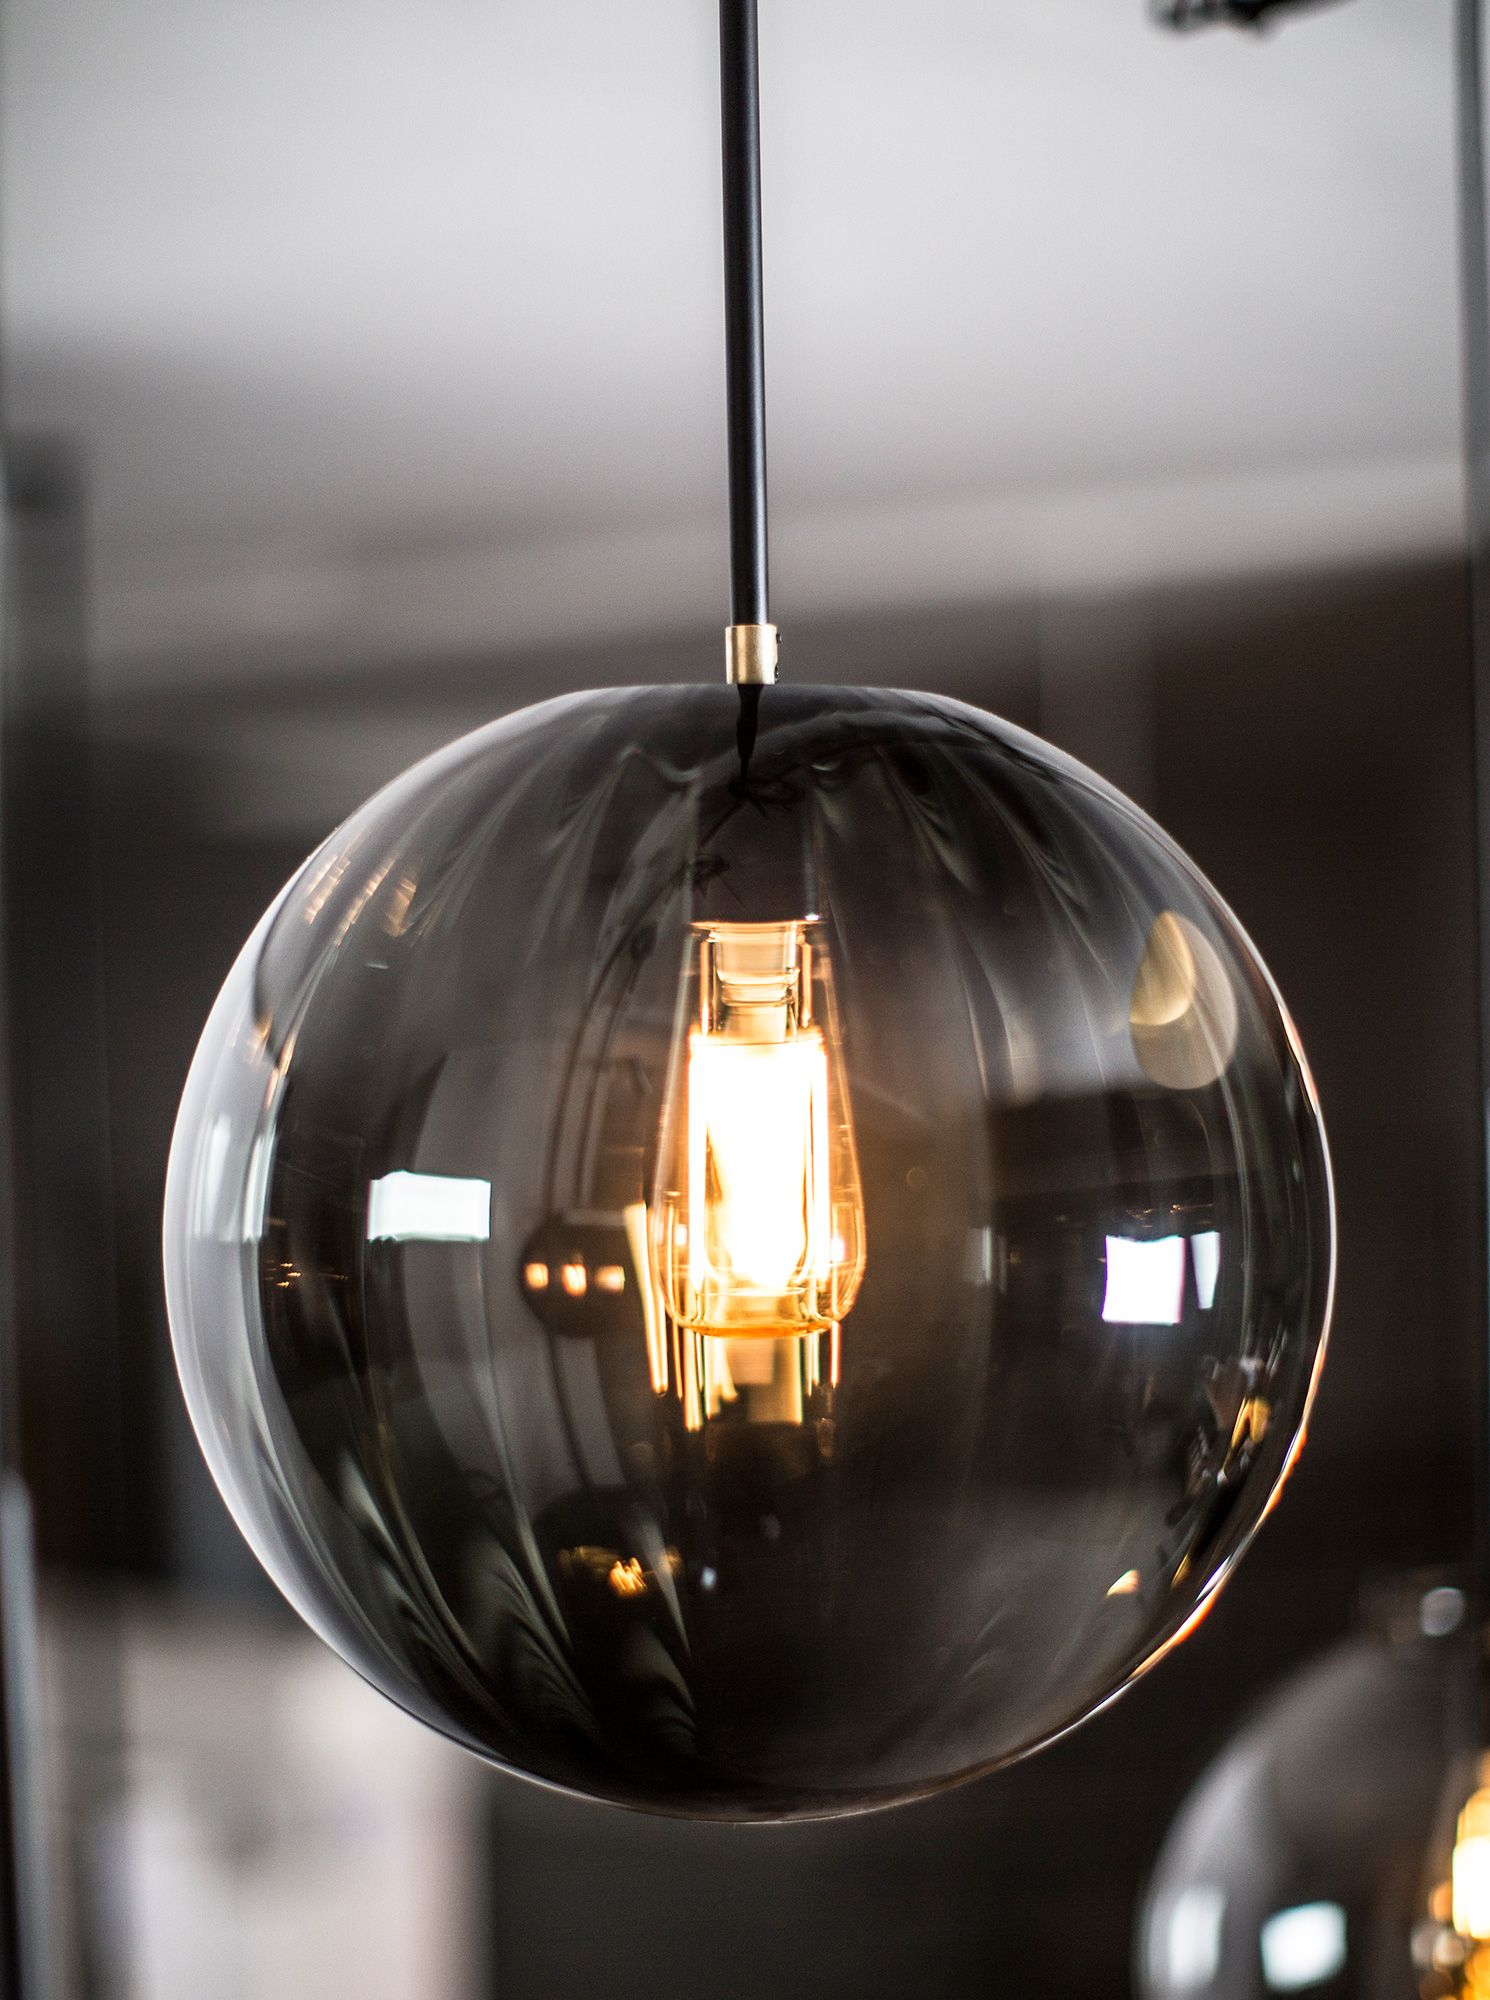 Waldorf pendant with smoked glass by Rubn & Waldorf pendant with smoked glass by Rubn | Pendant Light ...